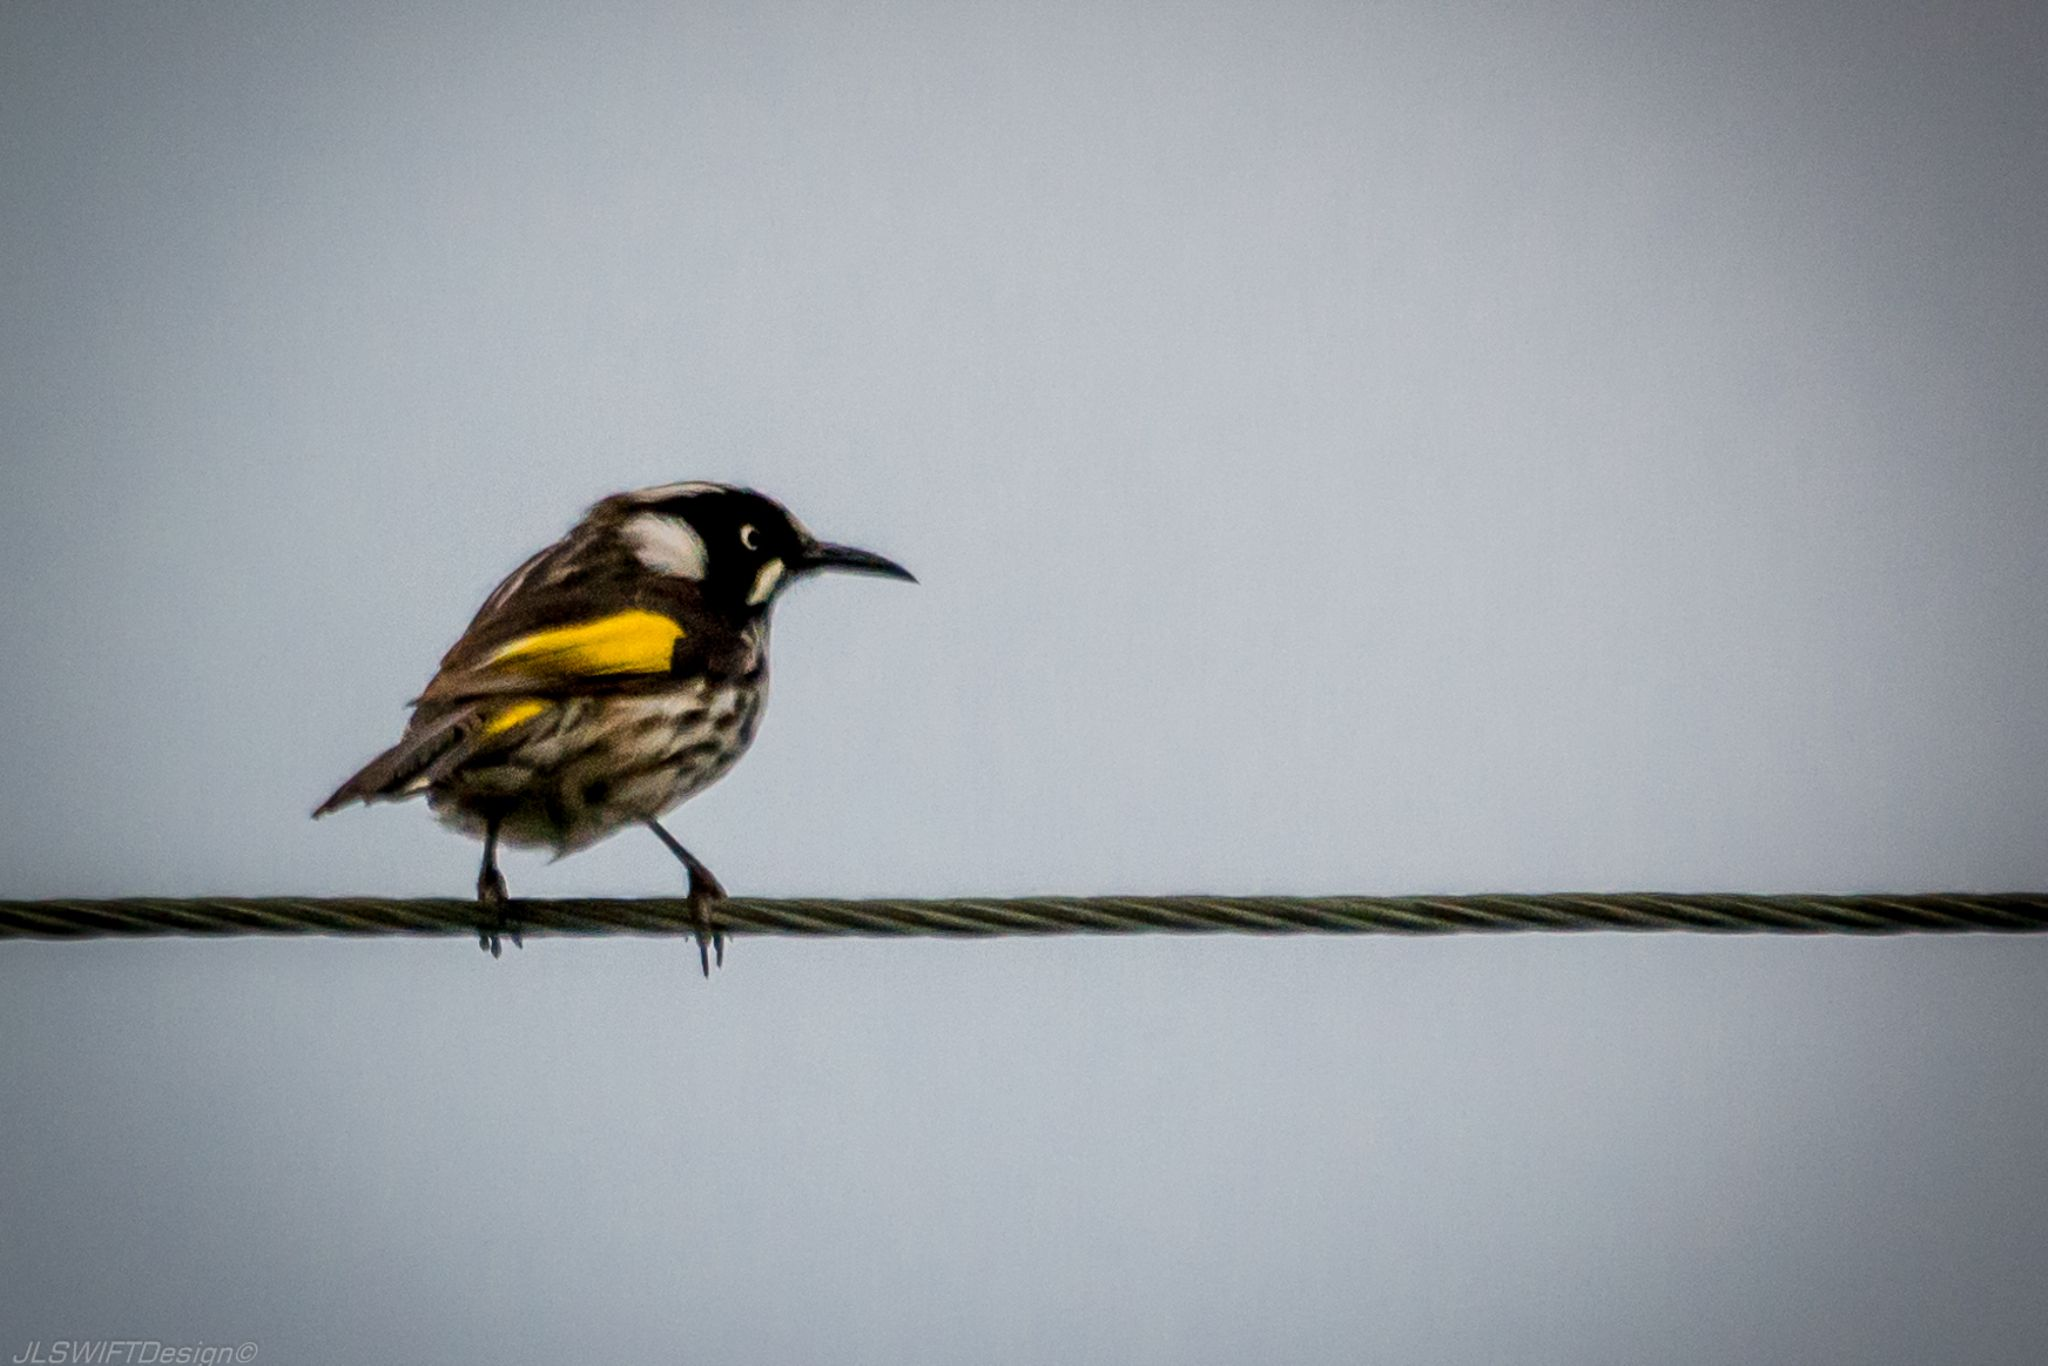 Yellow Bird on a wire by JLSWIFTdesign